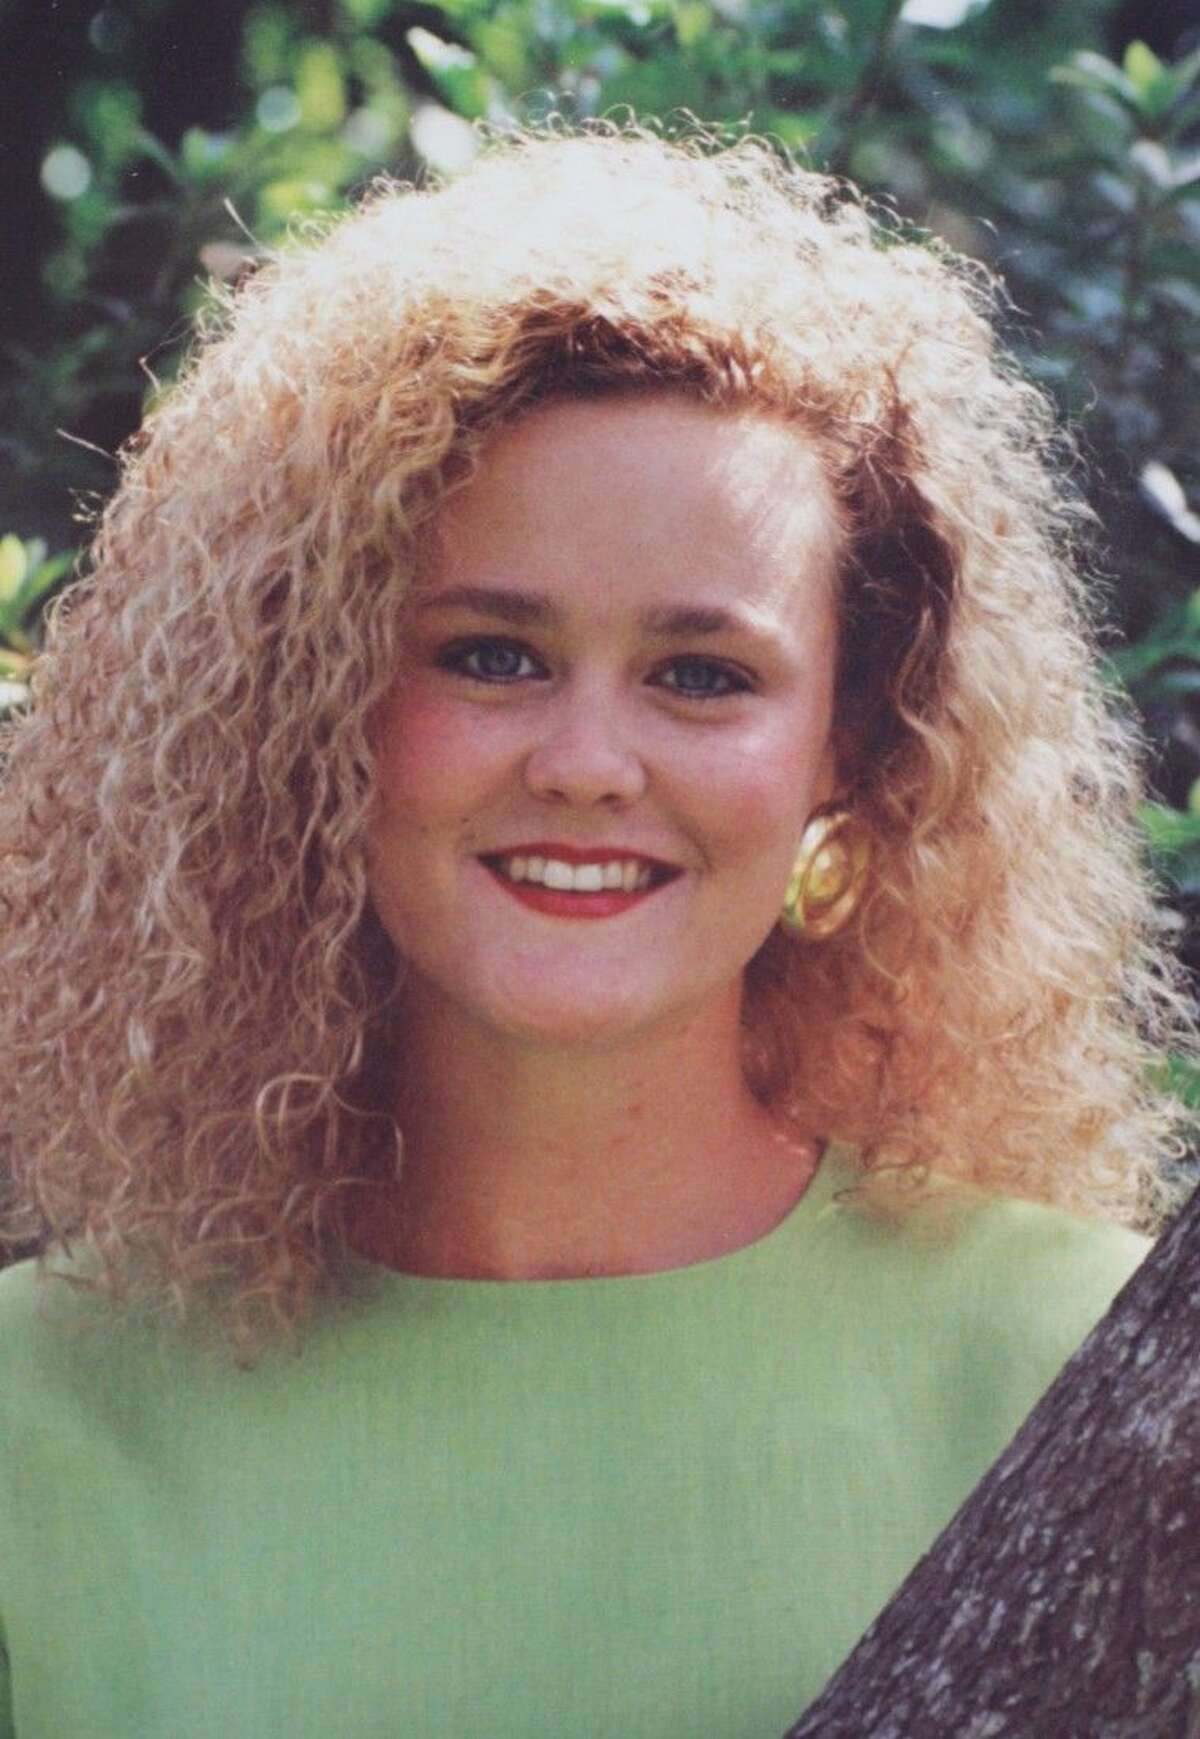 Lisa Allison, 21, the daughter of Mike and Susan Allison of Liberty, was home on spring break when she was abducted and murdered on April 3, 1996.